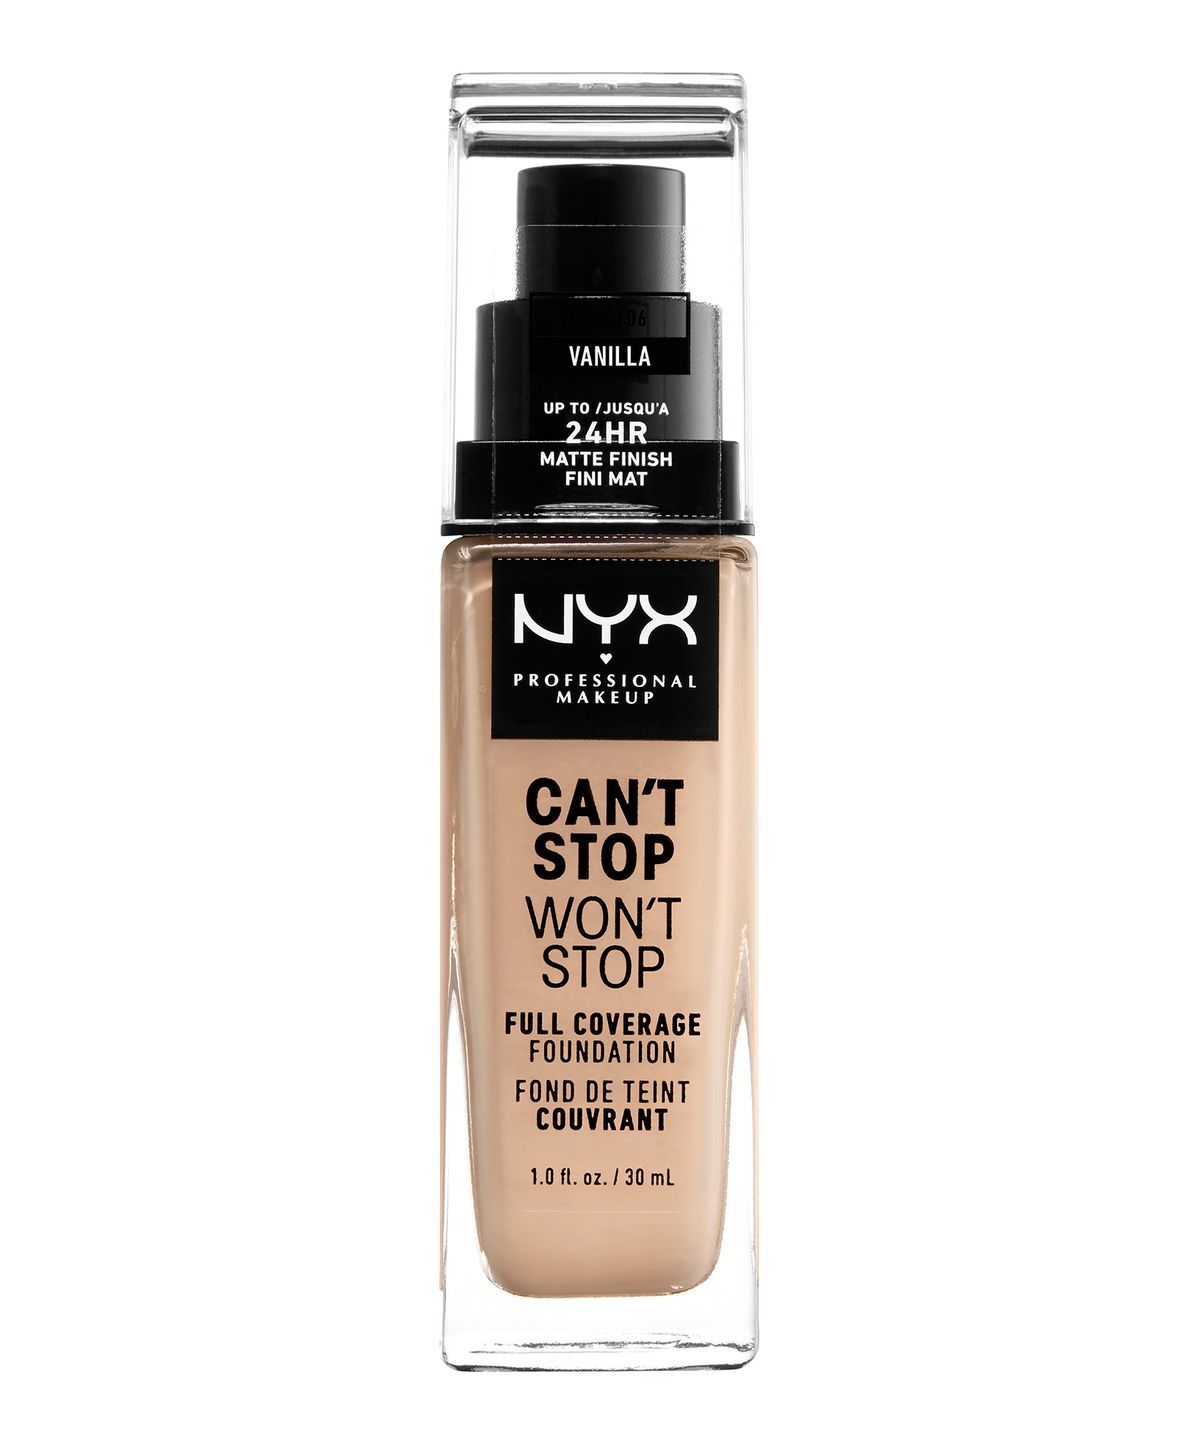 CANT STOP WONT STOP 24HR FOUNDATION VANILLA - NYX PROFESSIONAL MAKEUP